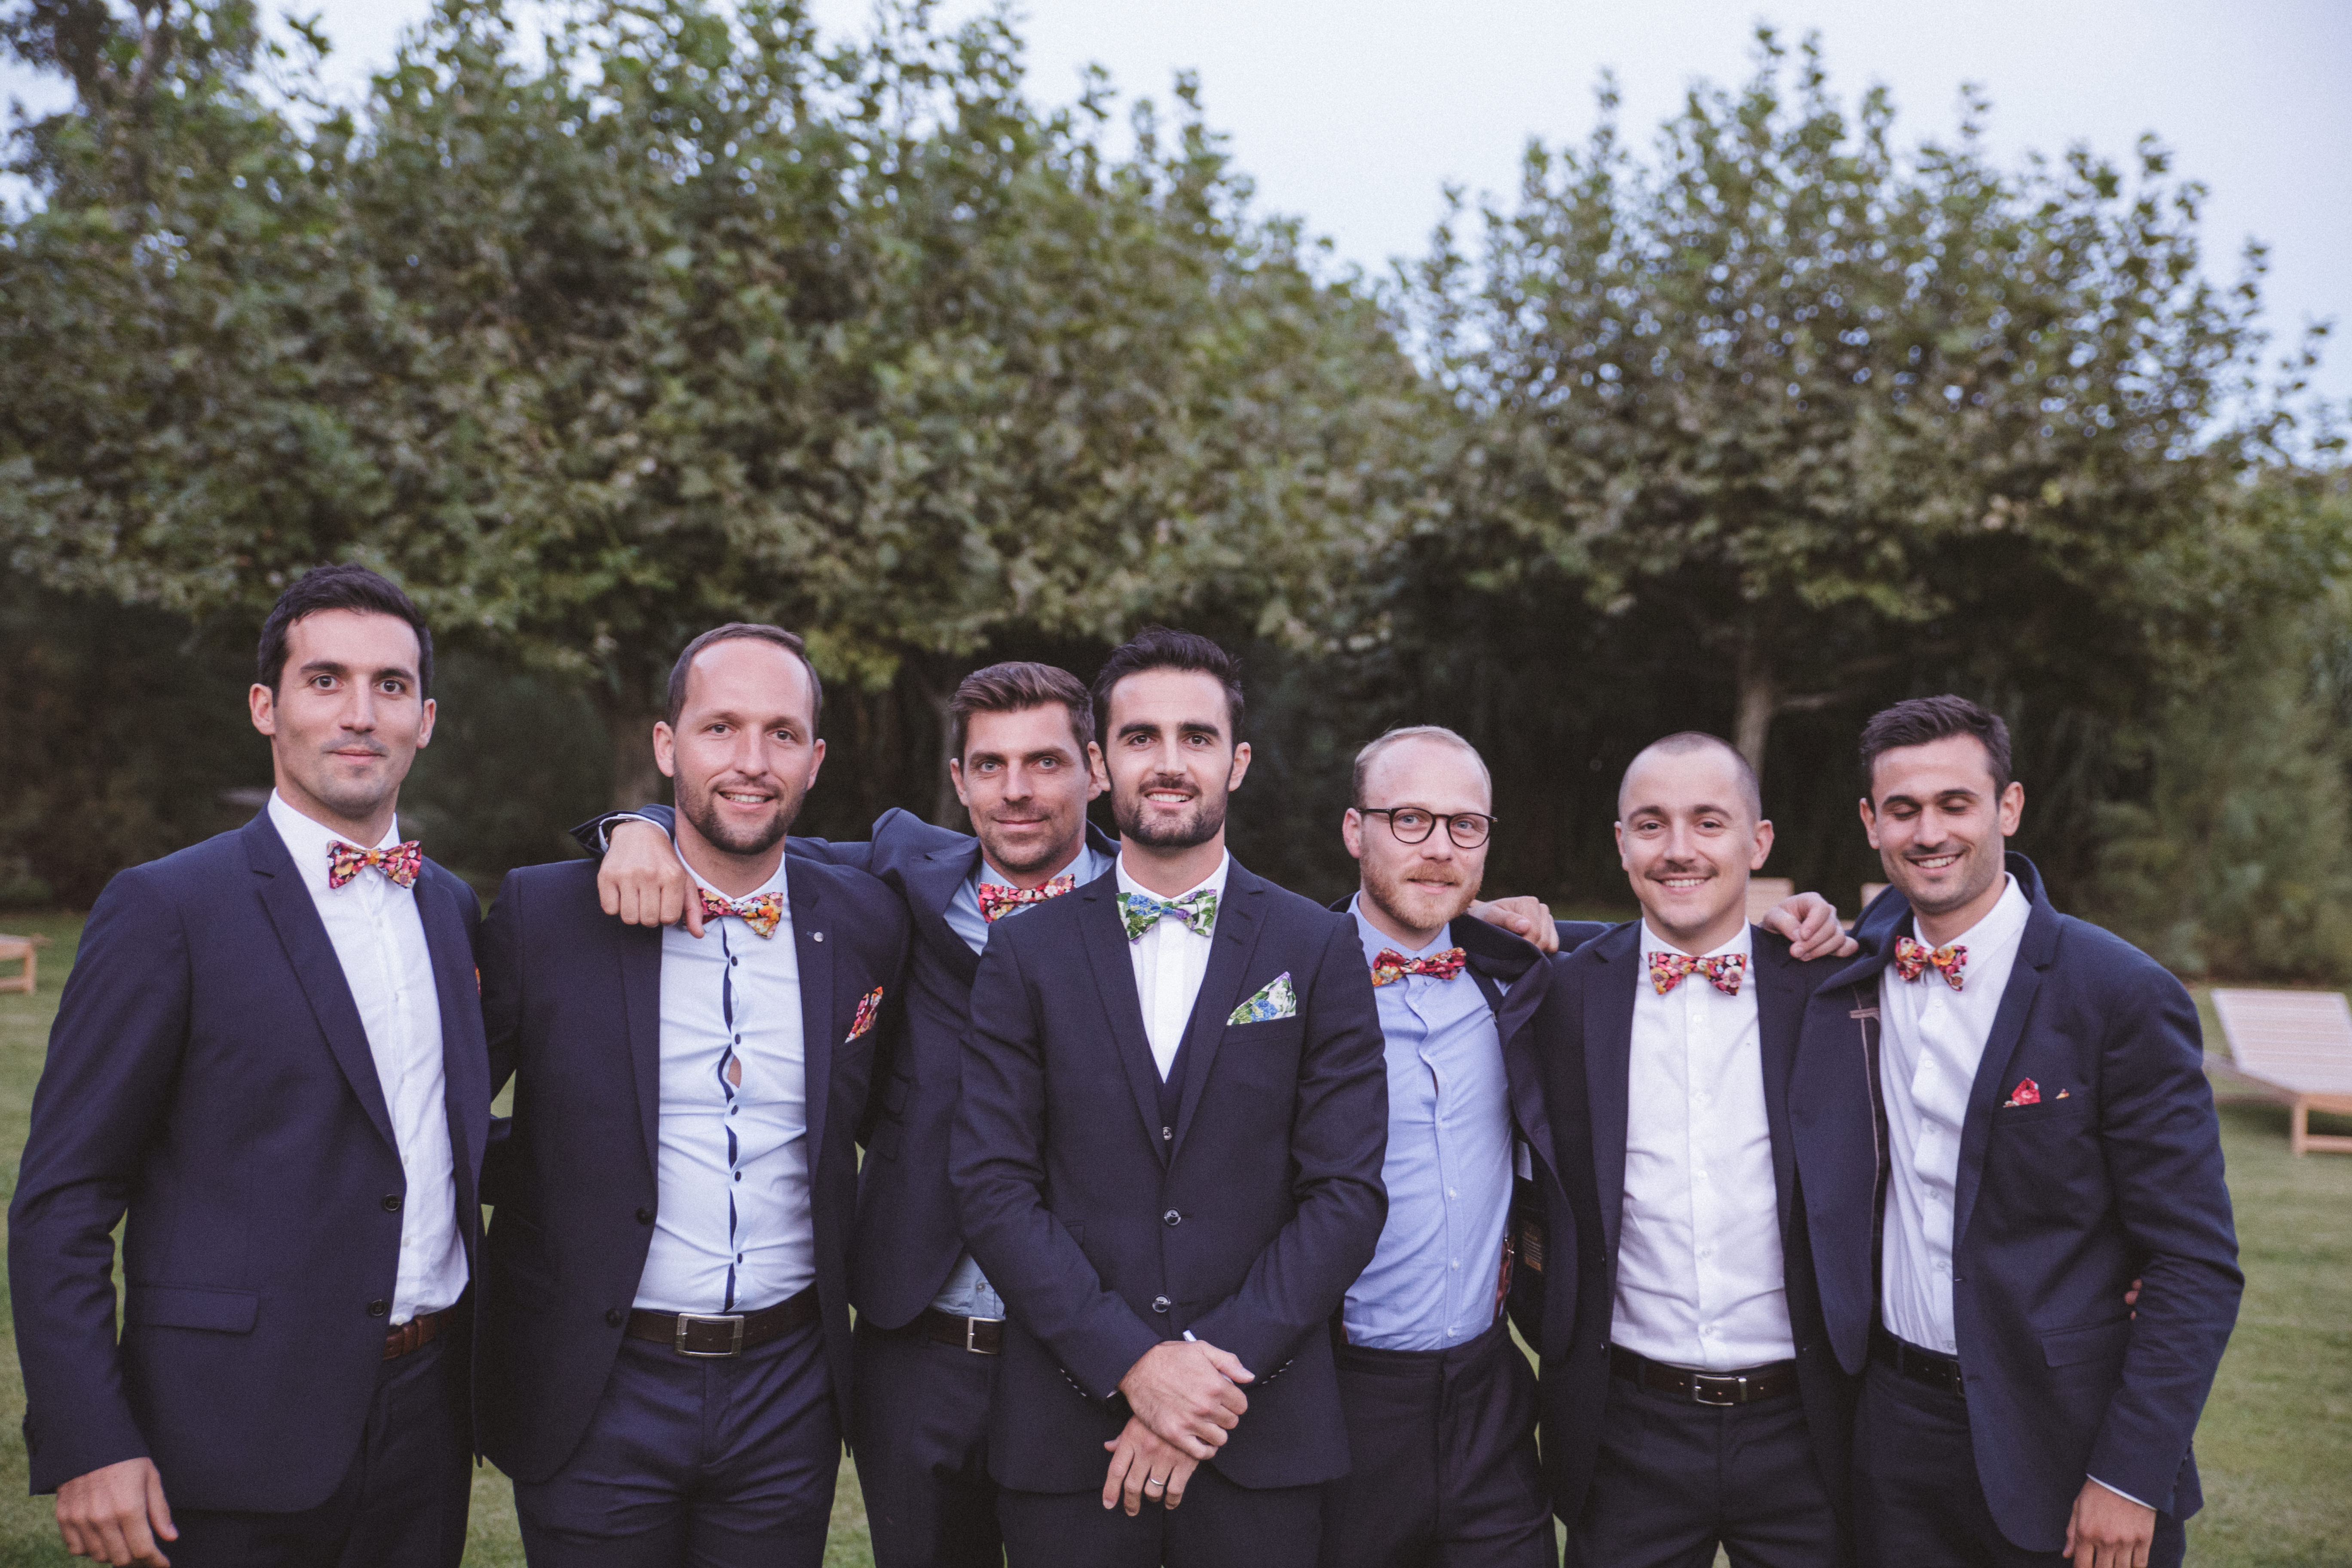 mercredie-mariage-blog-dresscode-groom-wedding-noeud-papillon-floral-fleur-diy-bow-tie-bleu-costume-suit-dark-blue